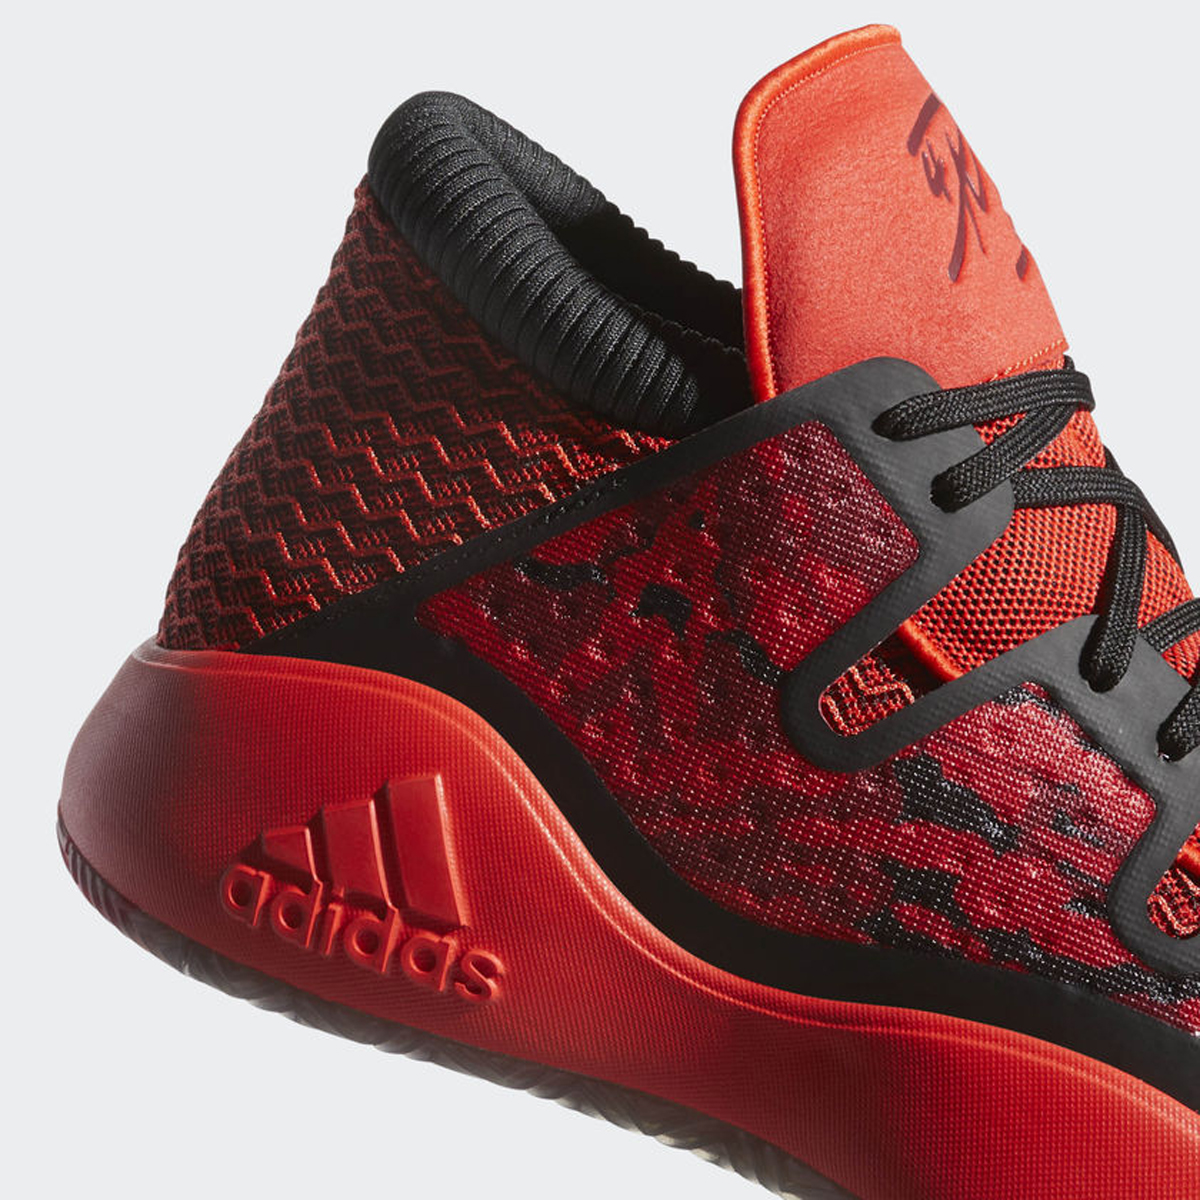 ff876d17a668 adidas-Pro-Vision-Donovan-Mitchell-PE-Red-5 - WearTesters